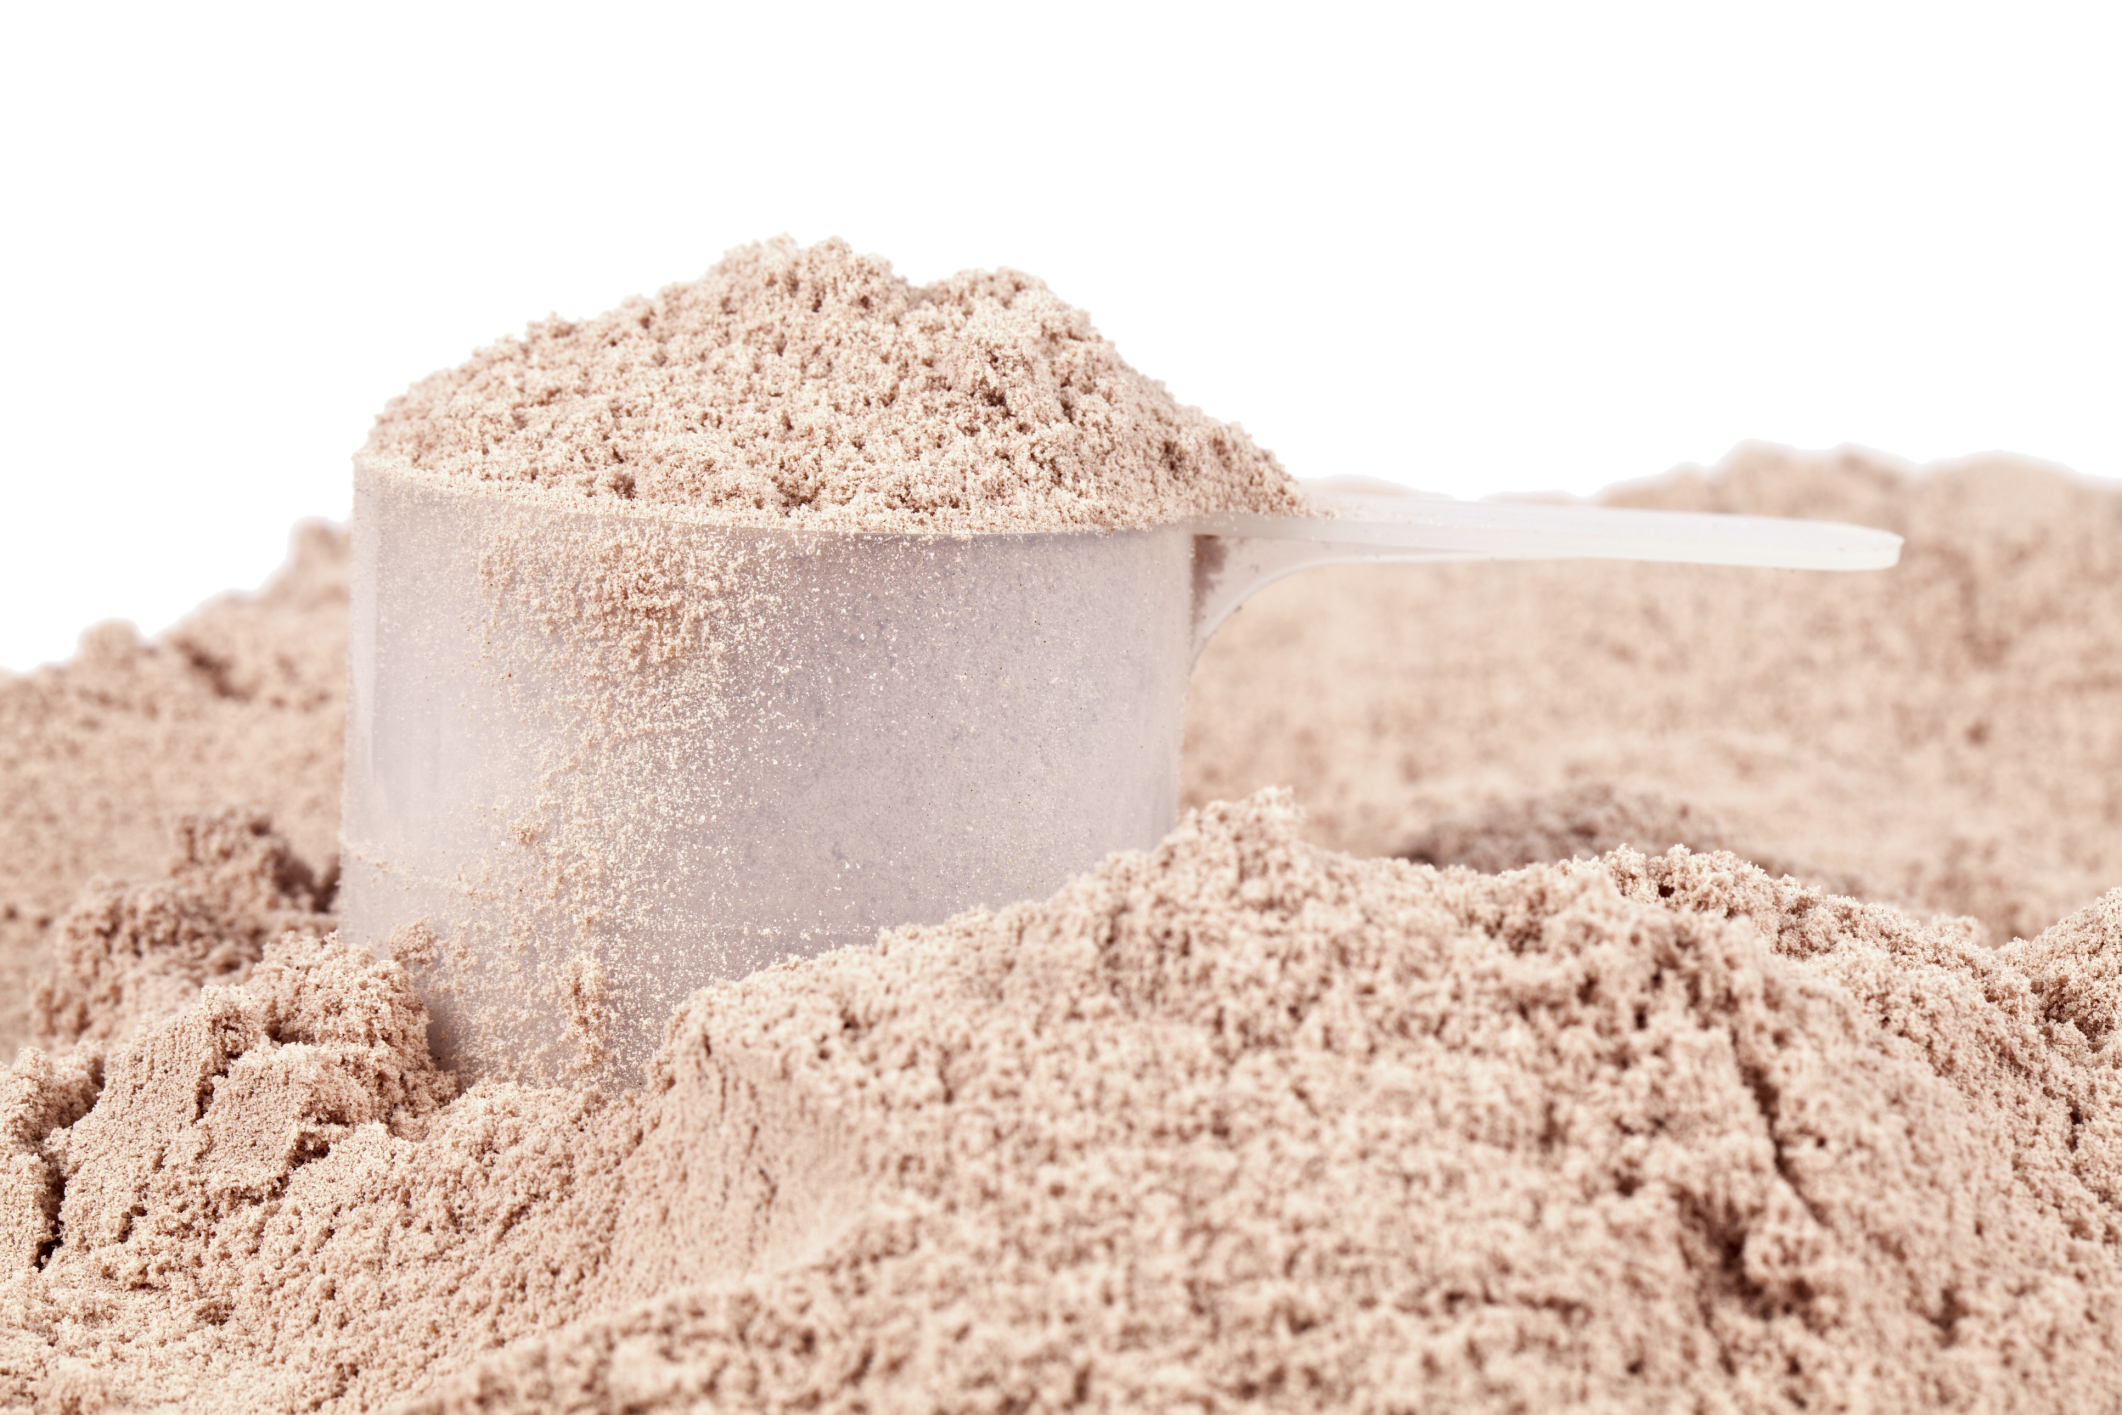 Scoop of chocolate whey isolate protein